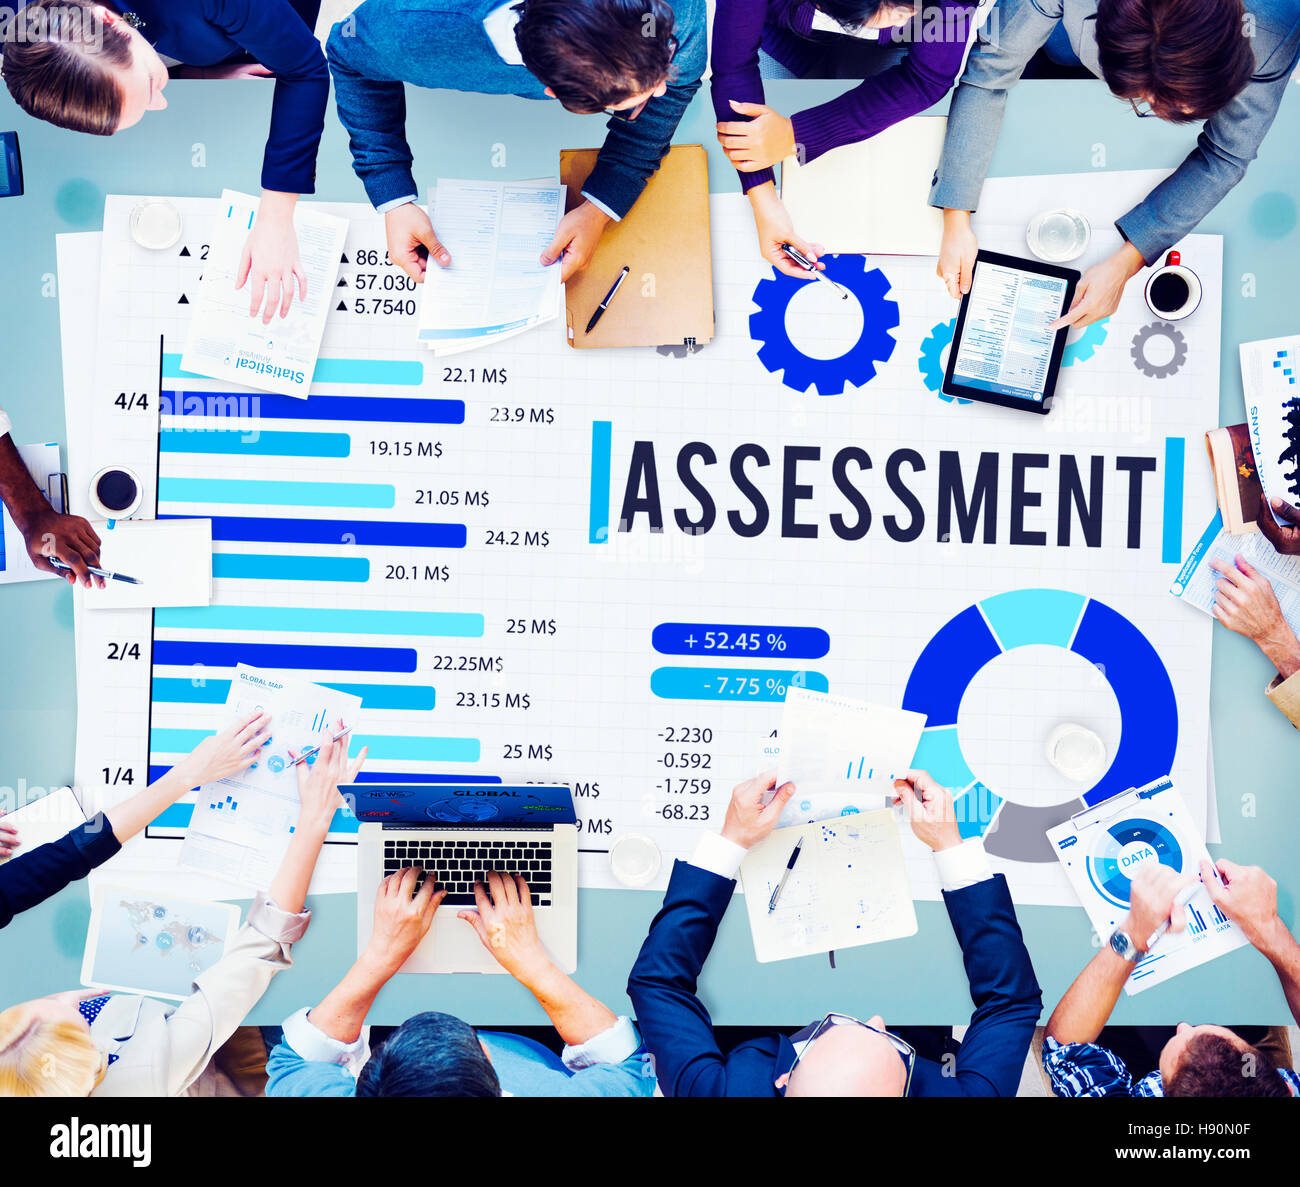 Assessment Evaluation Measure Validation Review Concept - Stock Image